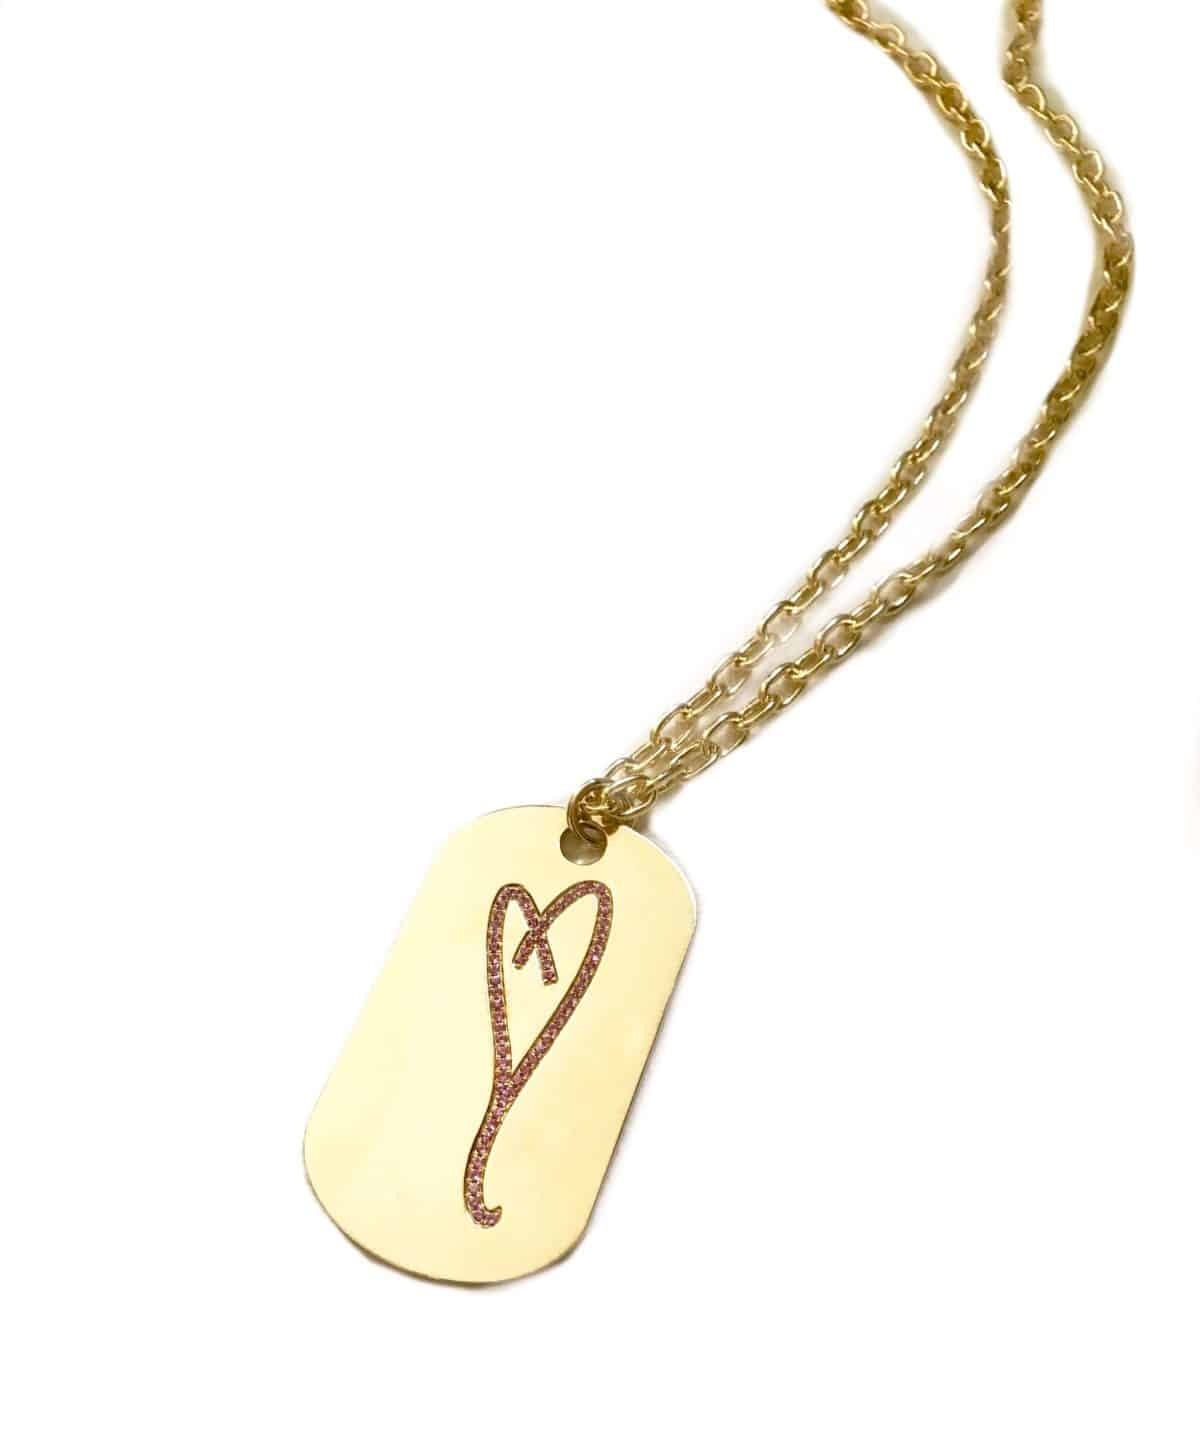 14k gold and pink sapphire heart necklace